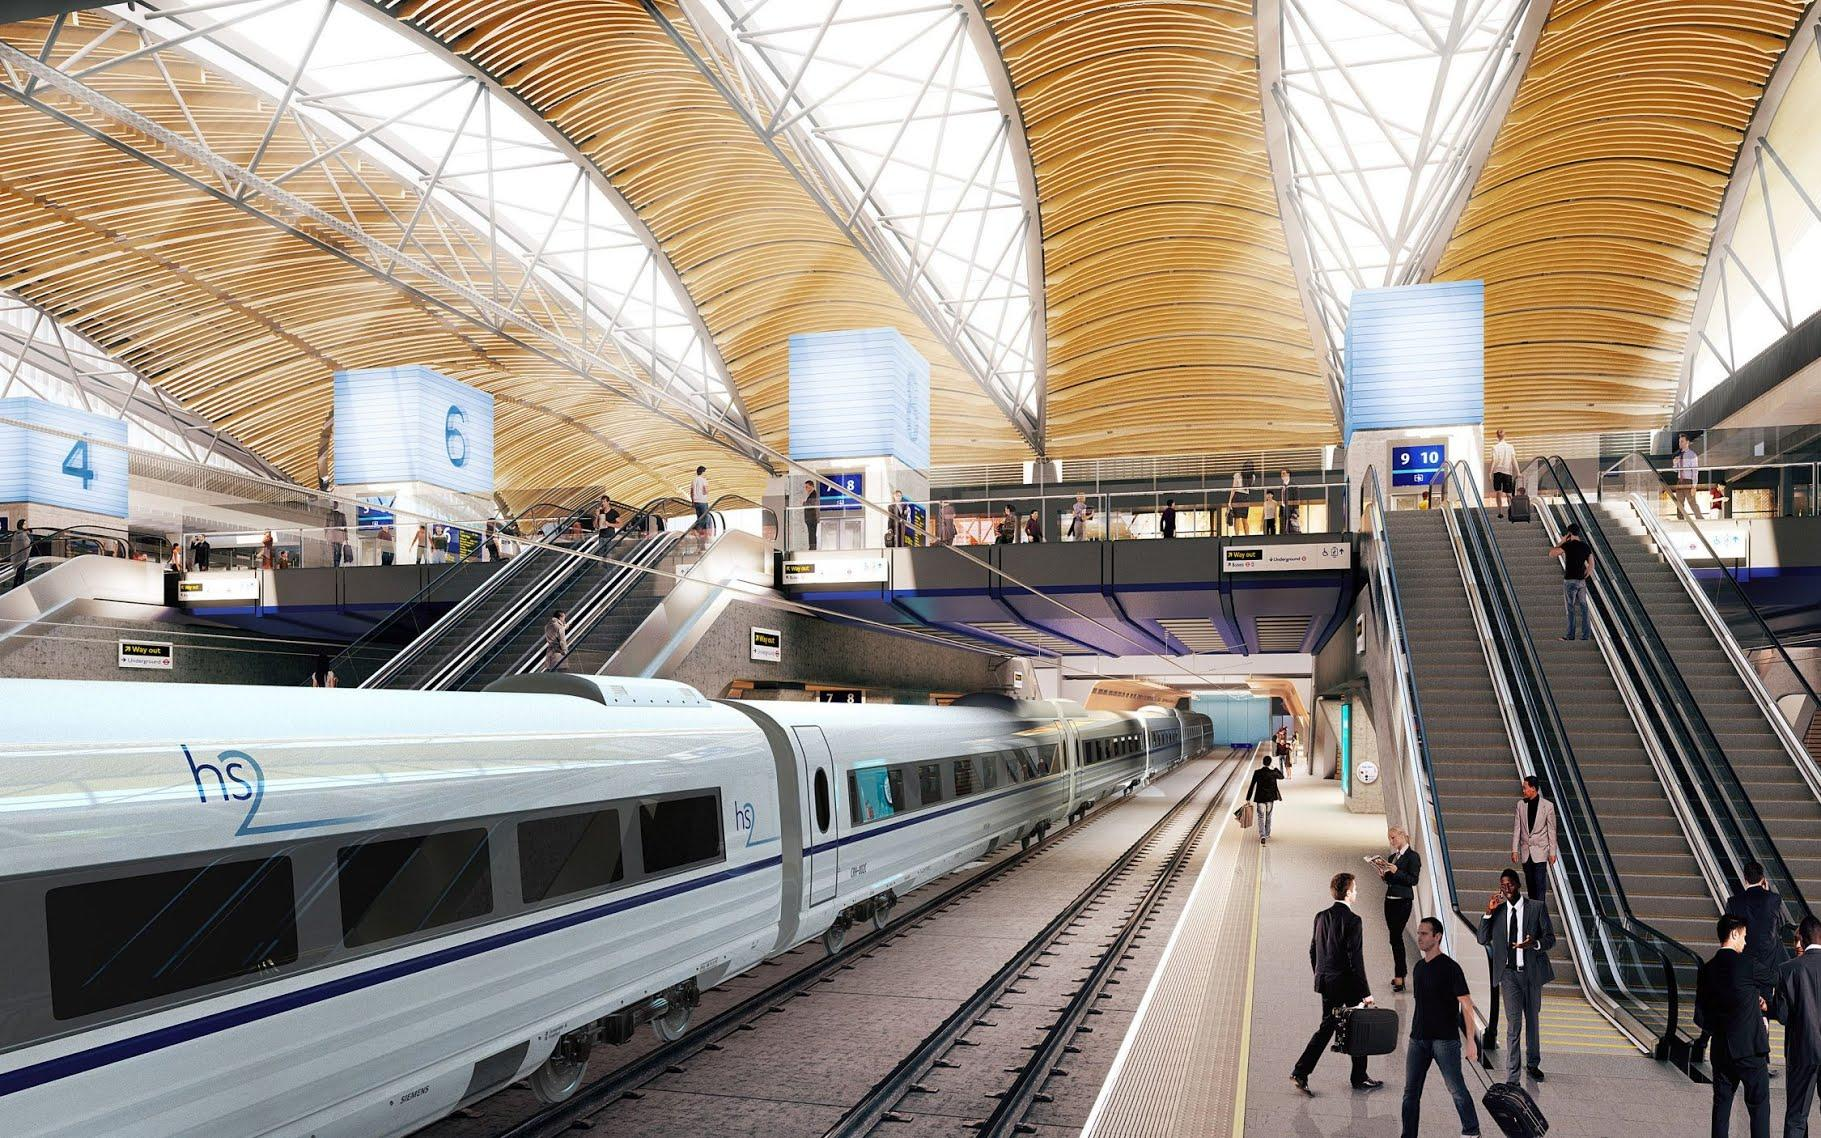 HS2 is worse value for money than improving existing rail network